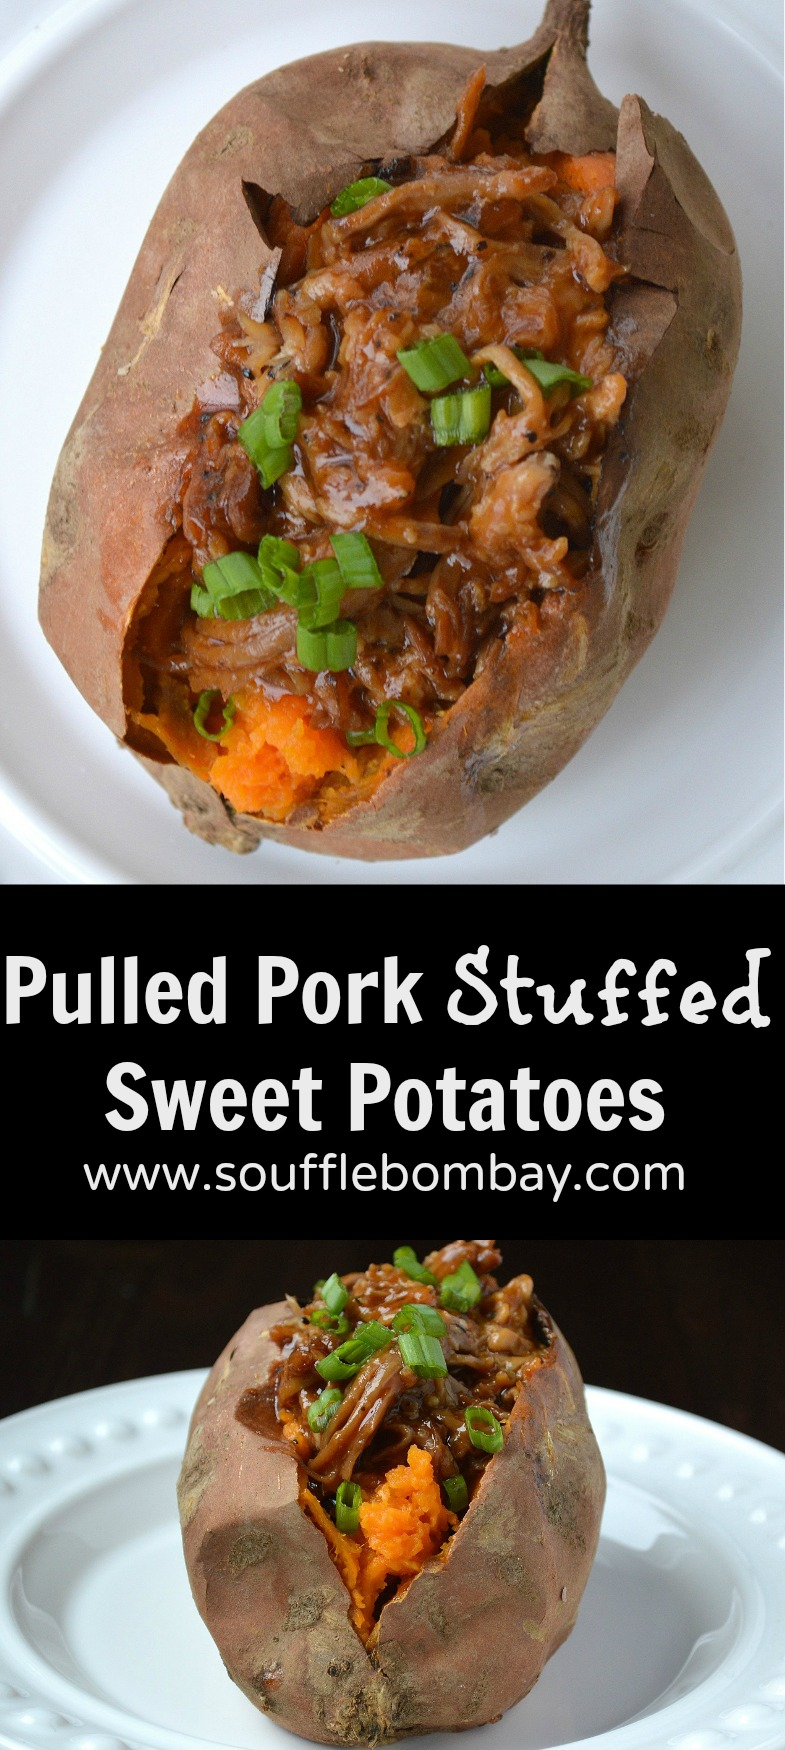 Pulled Pork Stuffed Sweet Potatoes. A great use for left over Pulled Pork PLUS they go together so well!